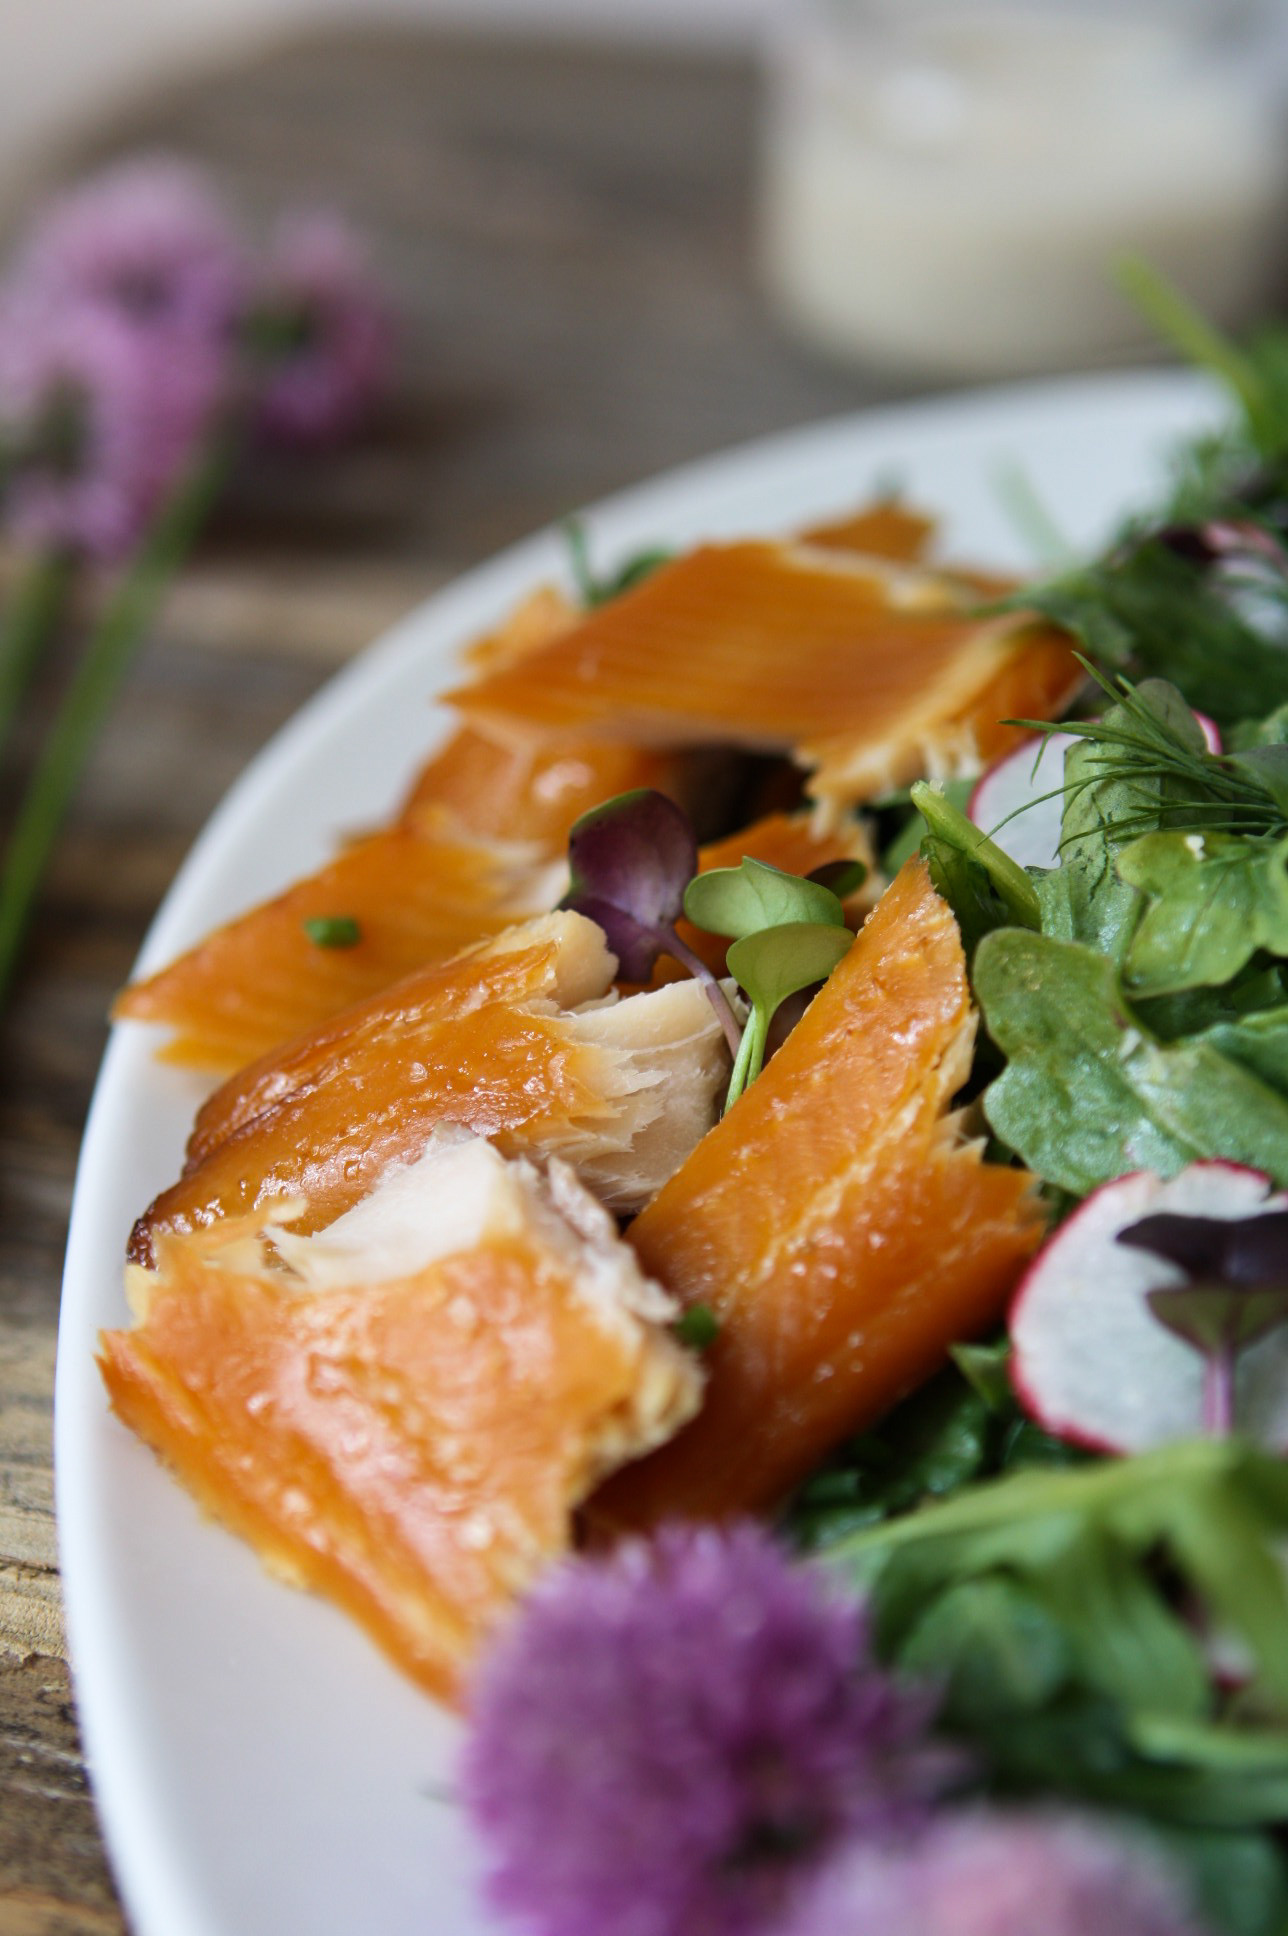 Close up photo of smoked trout on top of spring greens on a white plate.